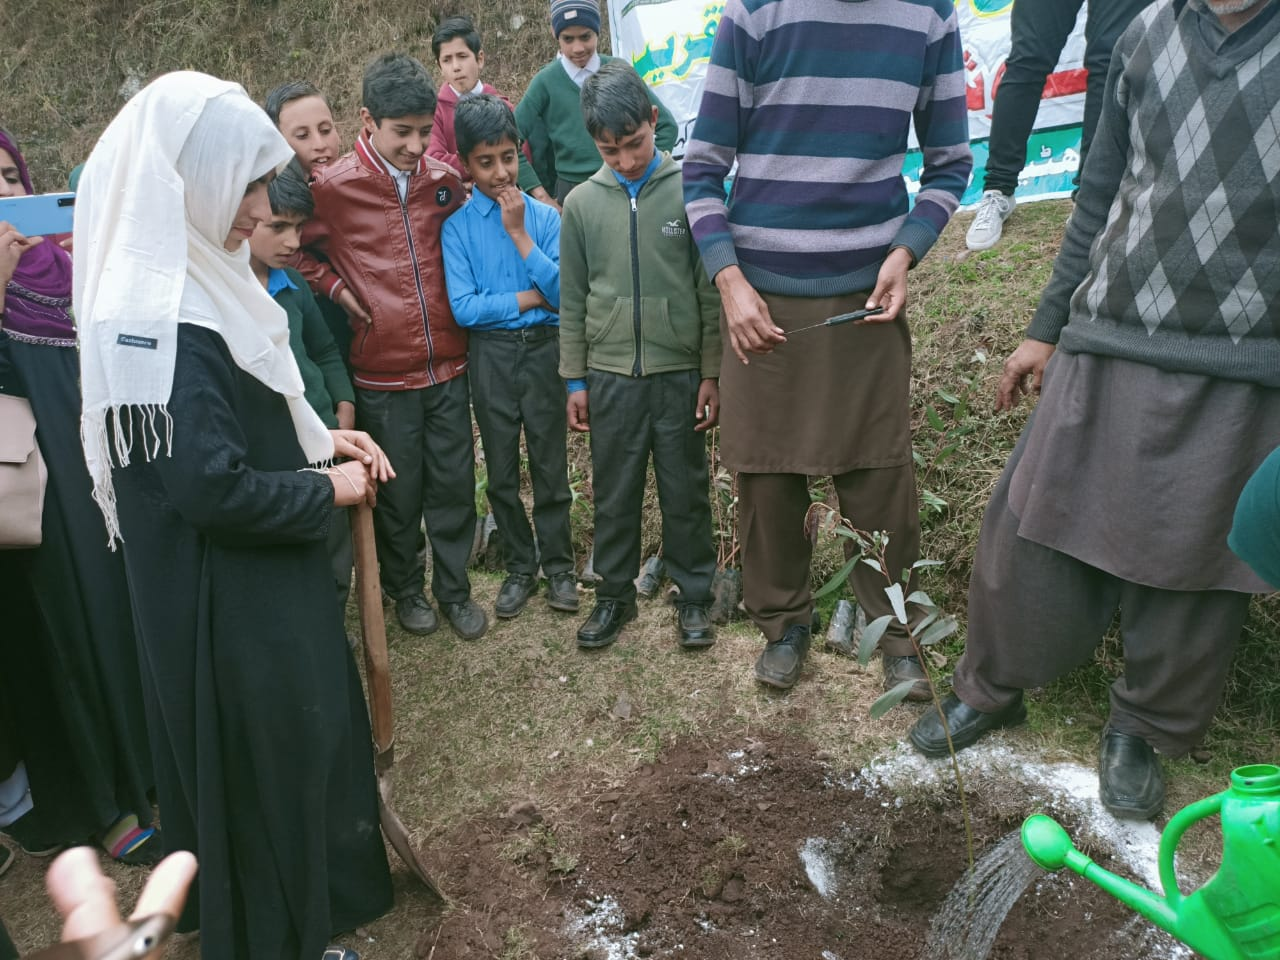 Rossy Foundation Pakistan ( Asia), Mr. Arbarb Ansar On A Tree-Planting Campaign in Pakistan